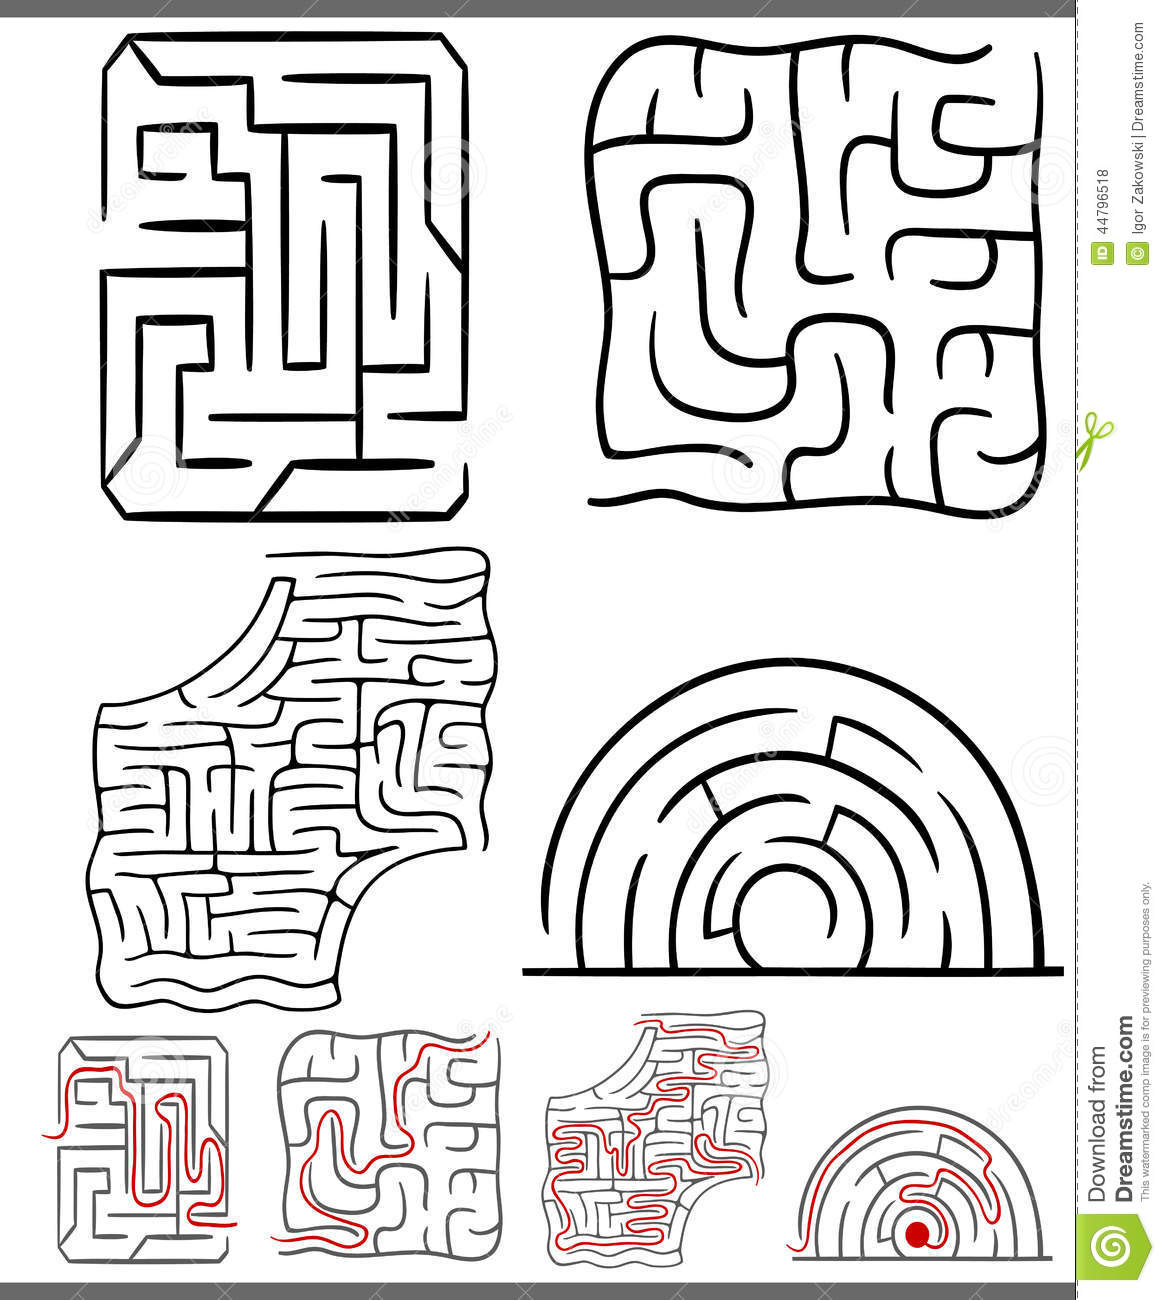 Mazes Or Labyrinths Diagrams Set Stock Vector